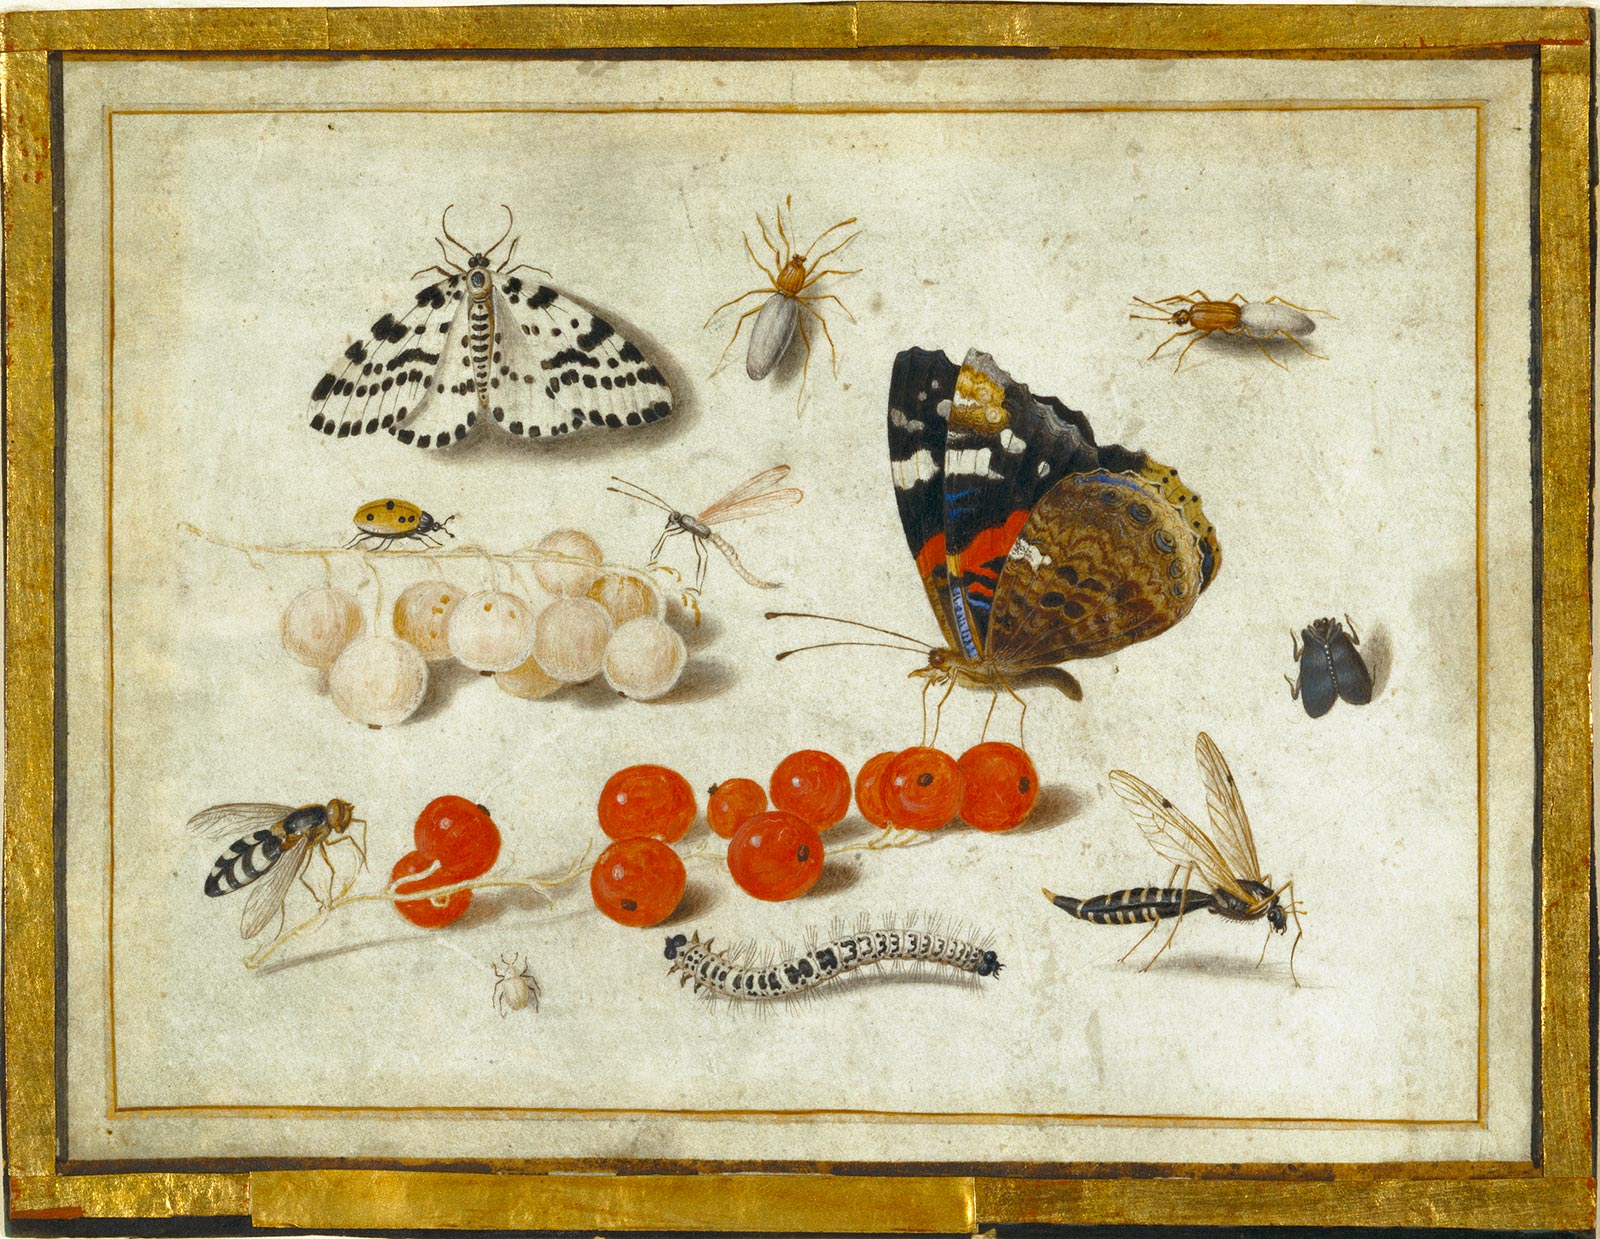 Illustration of 2 butterflies, 8 bugs, and berries, both red and white.